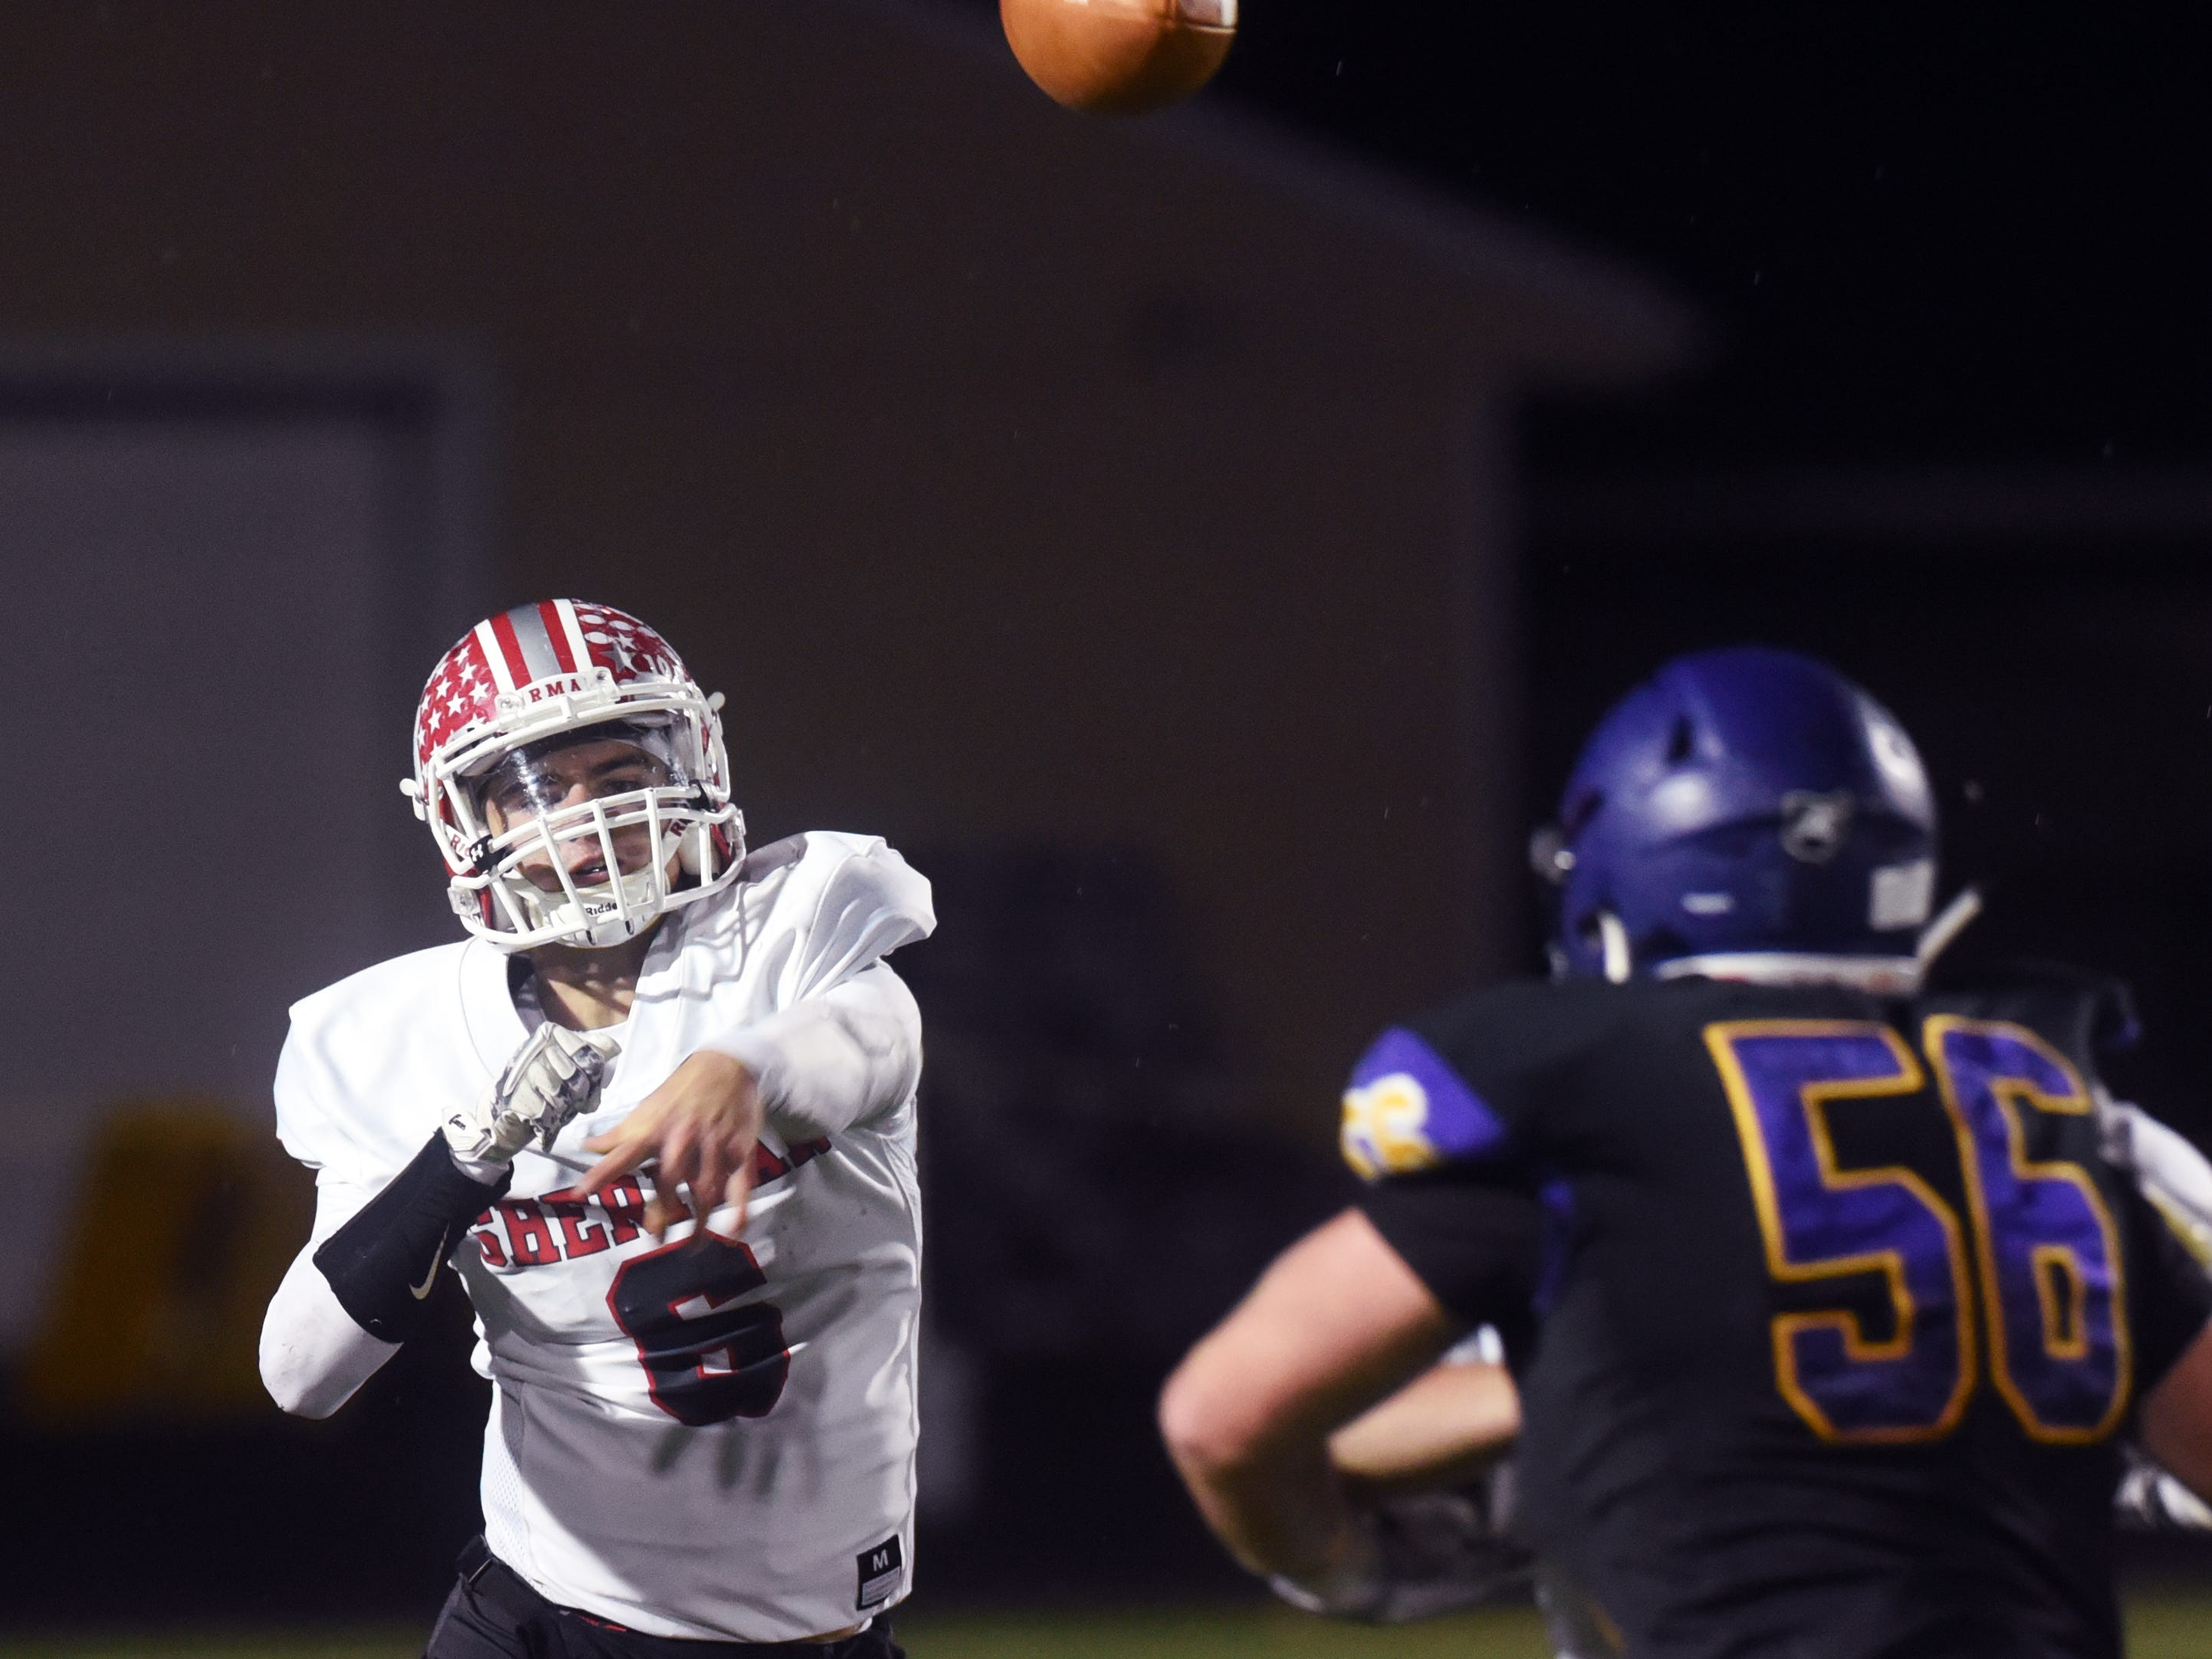 Etjhan Heller throws the ball during Sheridan's 27-19 win against No. 2 ranked Bellbrook in a Division III, Region 11 quarterfinal on Friday at Miami Valley South Stadium.